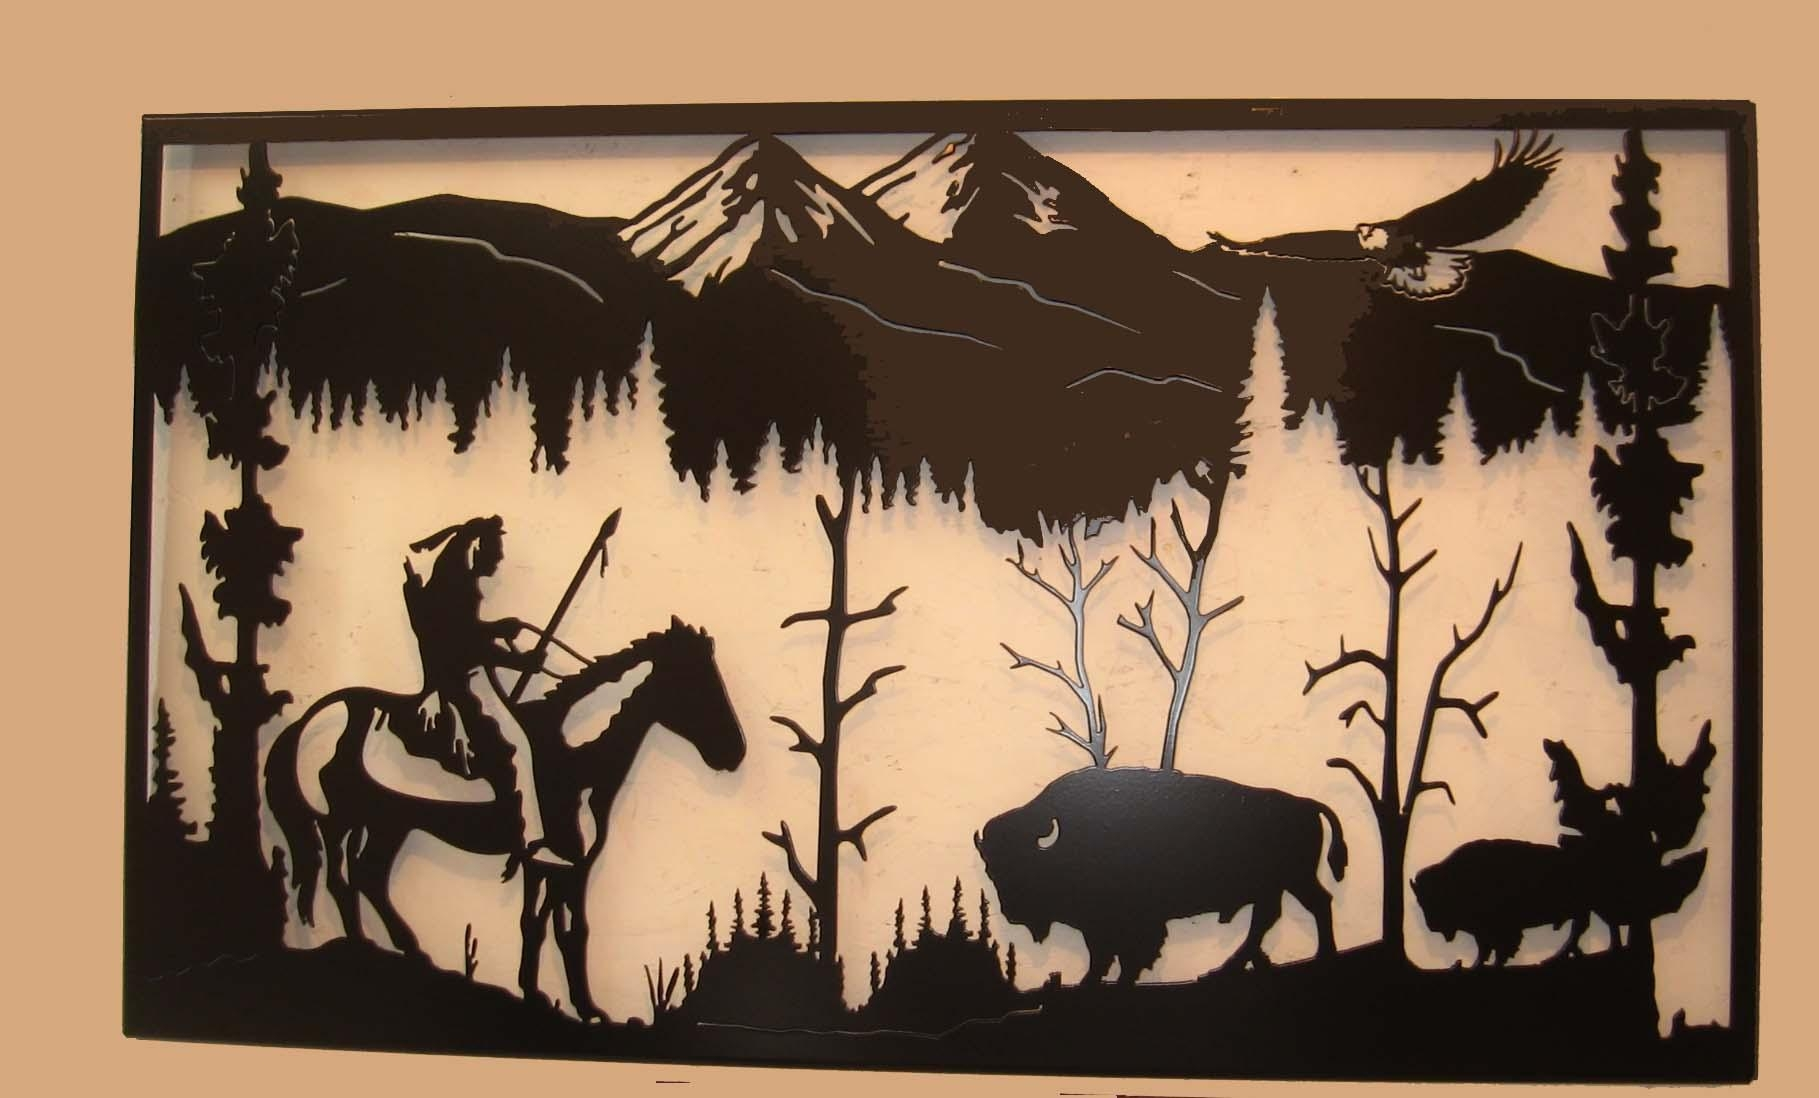 S & L Enterprises – Western Wall Art Regarding Western Metal Art Silhouettes (Image 12 of 20)